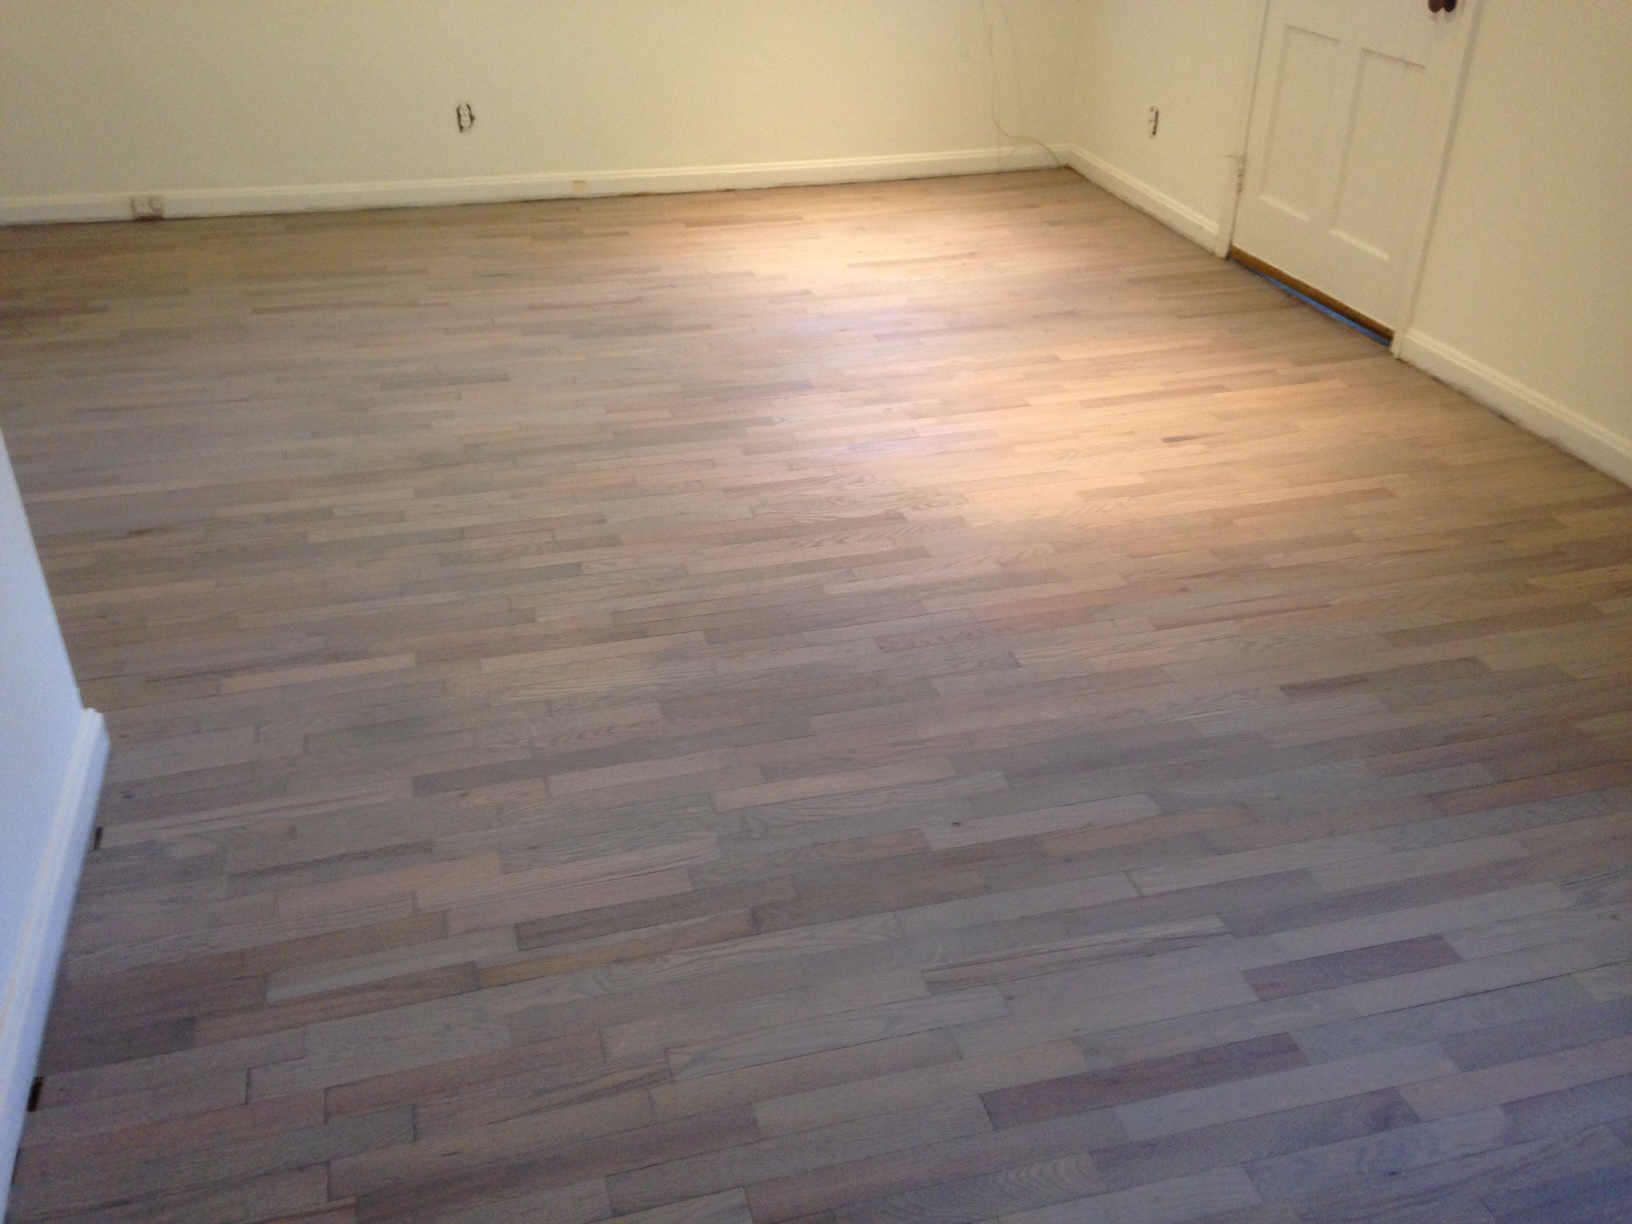 Refinishing wood floors for a beach house look dans floor store stained and refinished red oak floor for beach house look dailygadgetfo Image collections